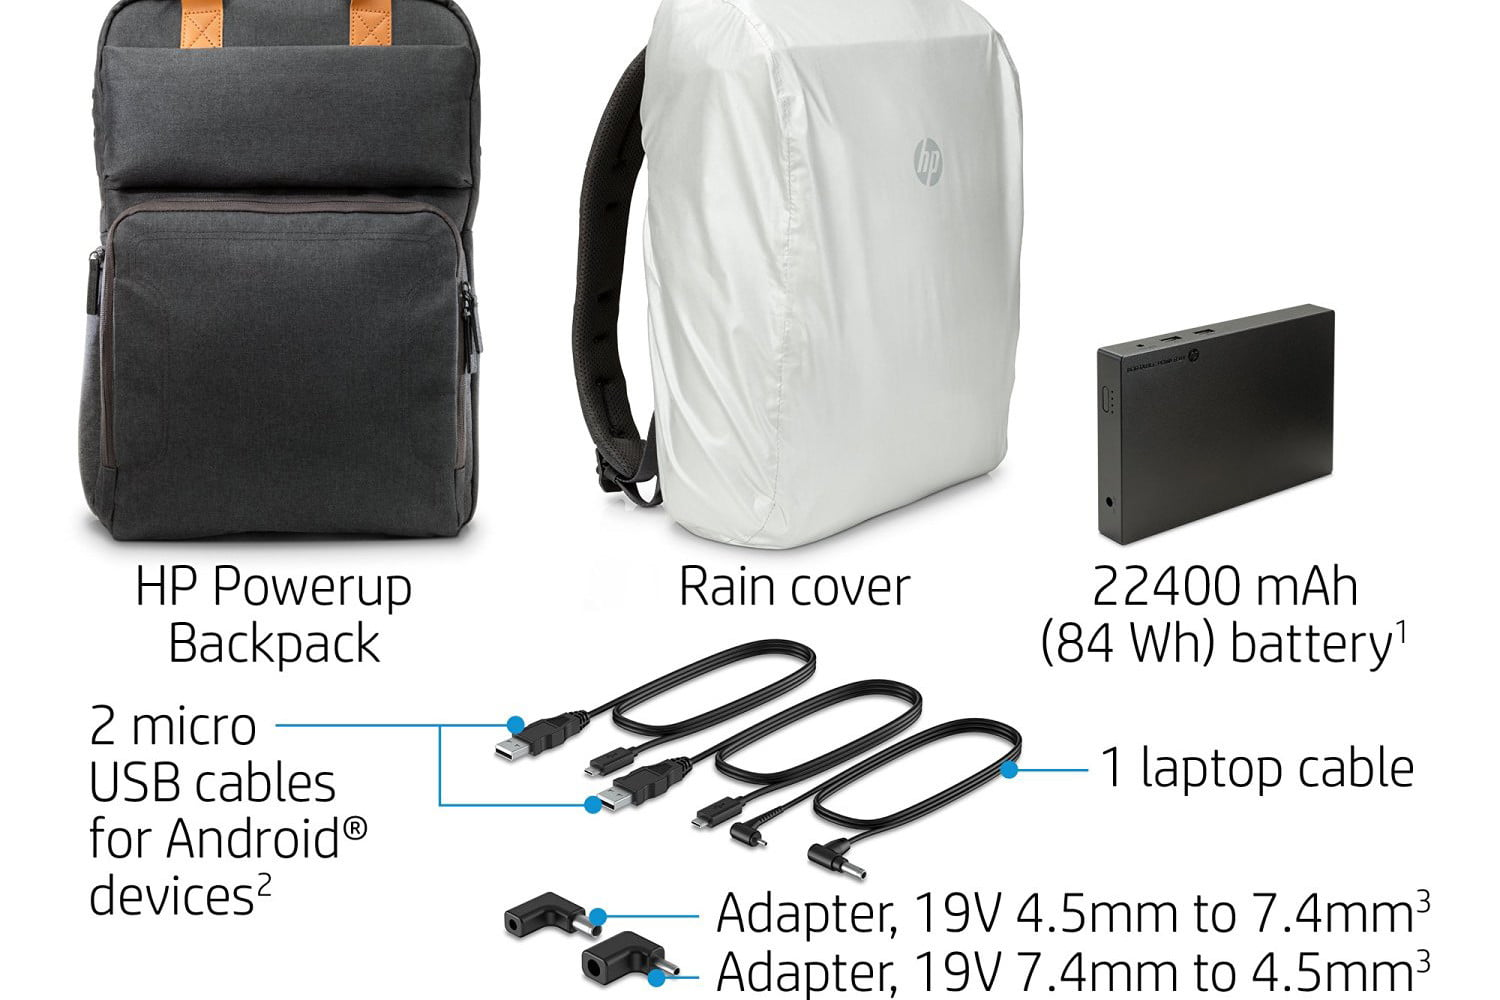 hp powerup backpack battery charge laptop phone tablet 5